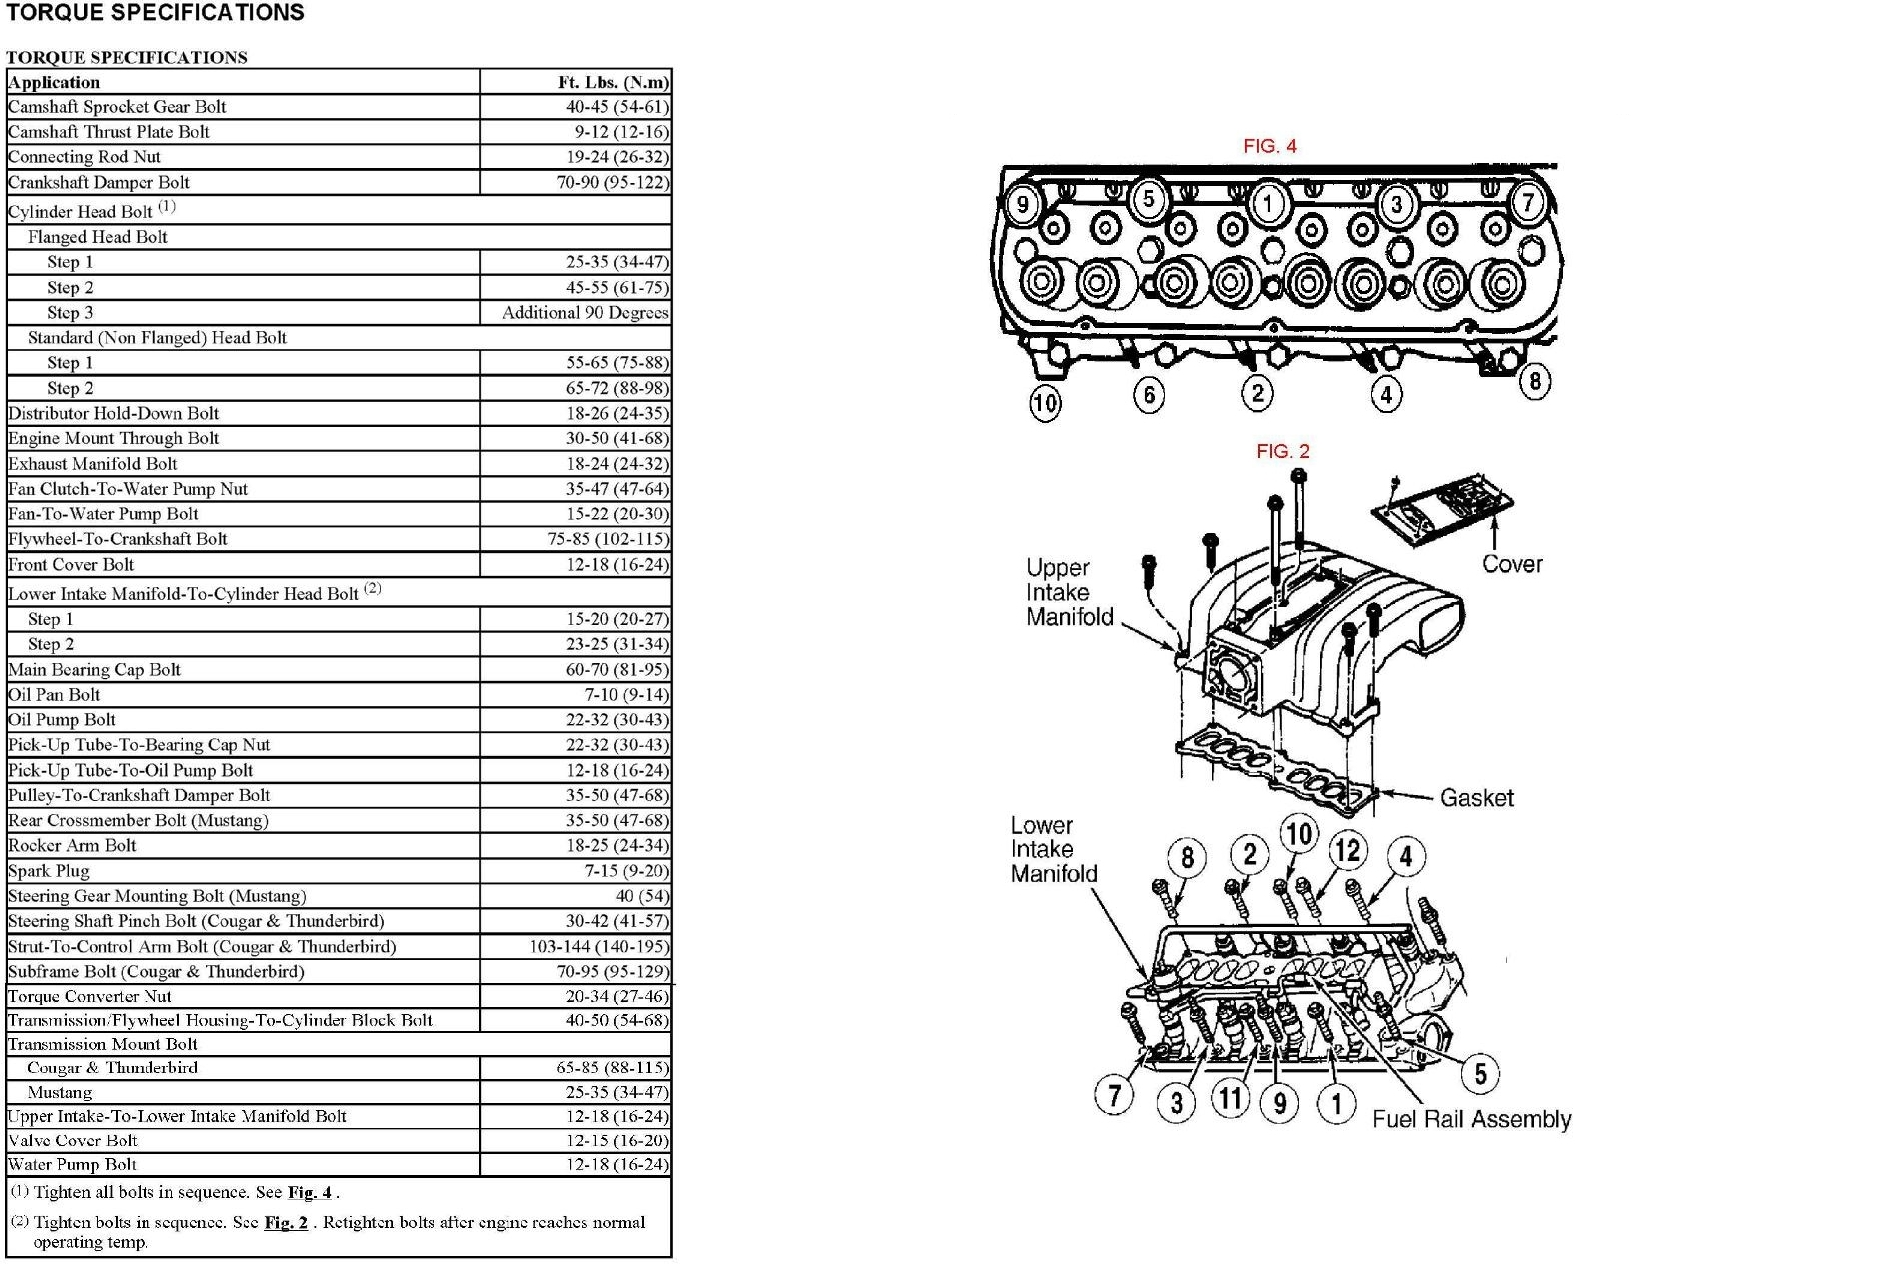 Ford 302 Engine Torque Specs Automotivegarage Org